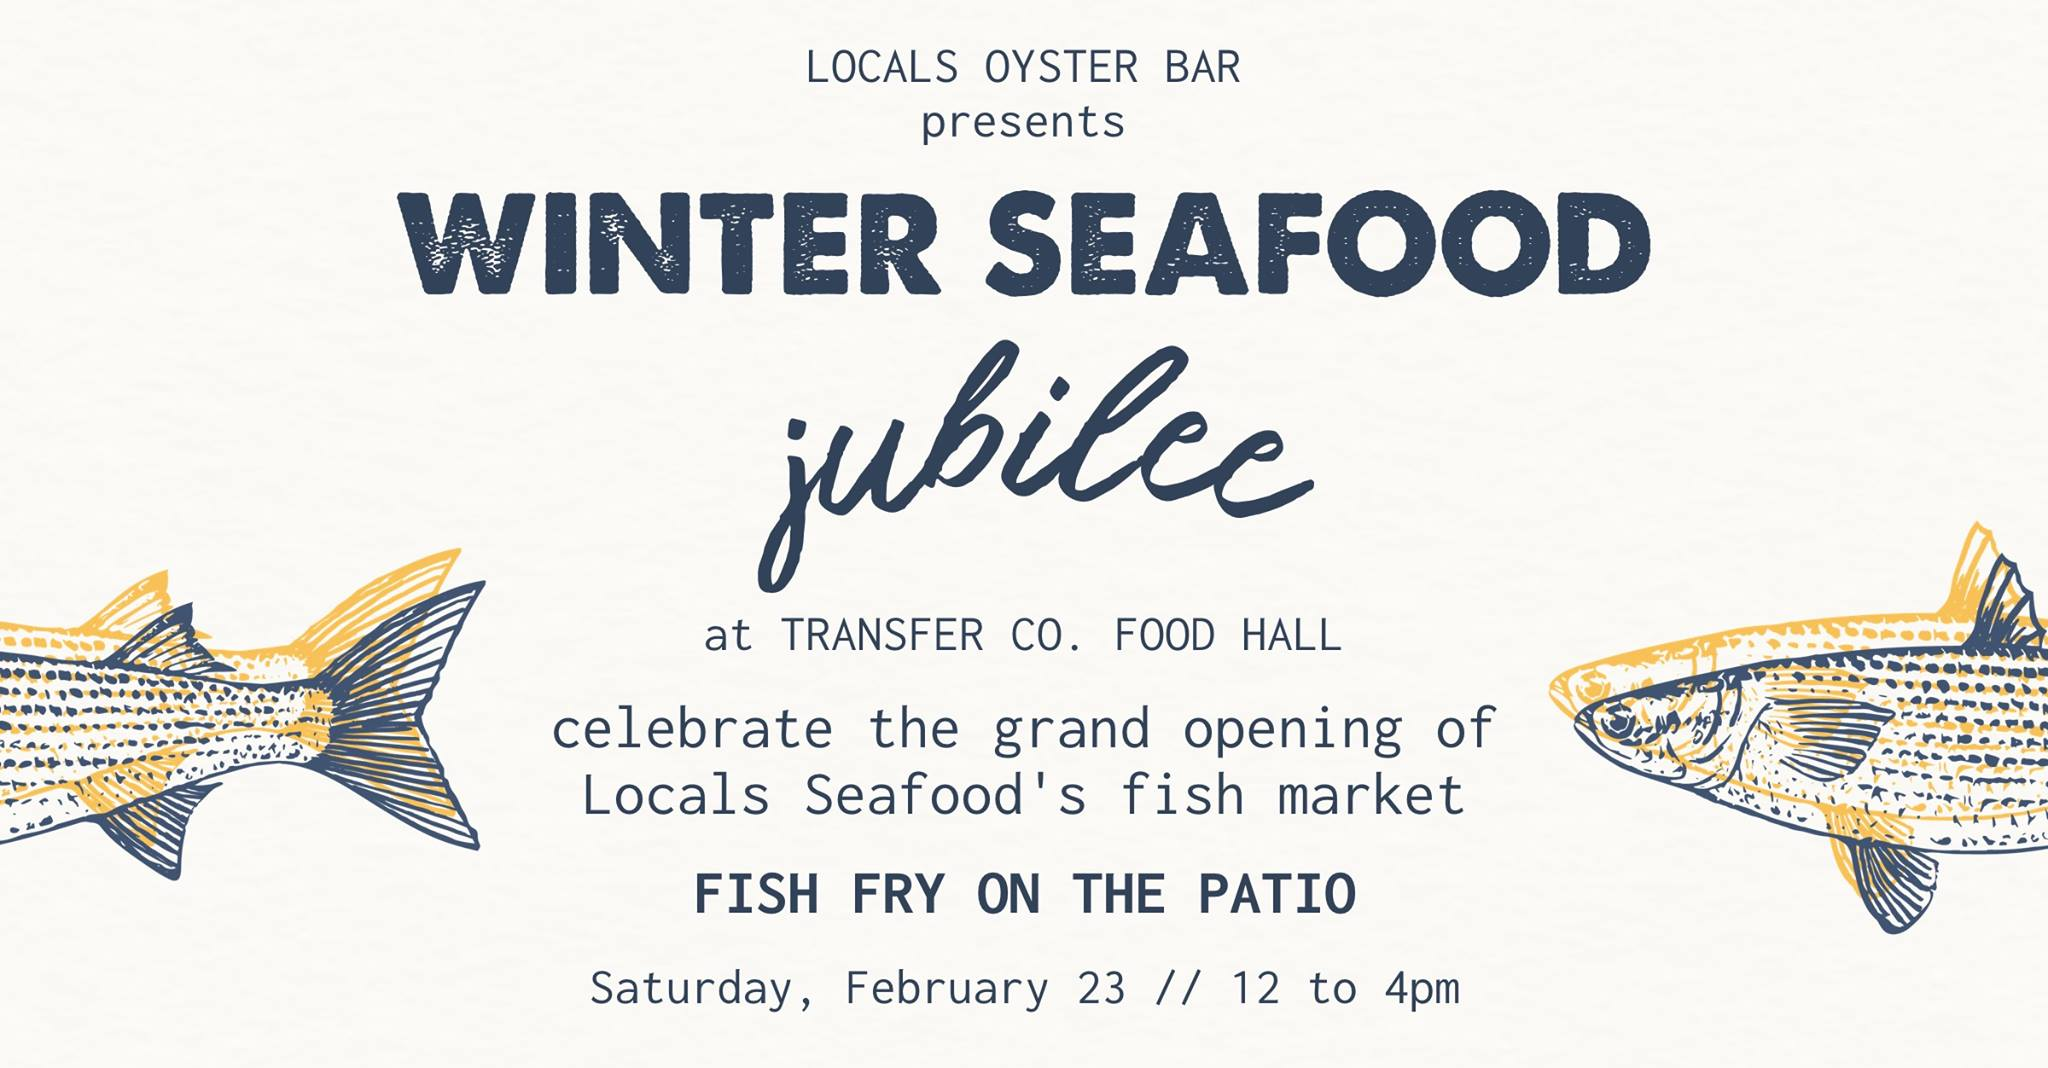 winter-seafood-jubilee-locals-oyster-bar.jpg